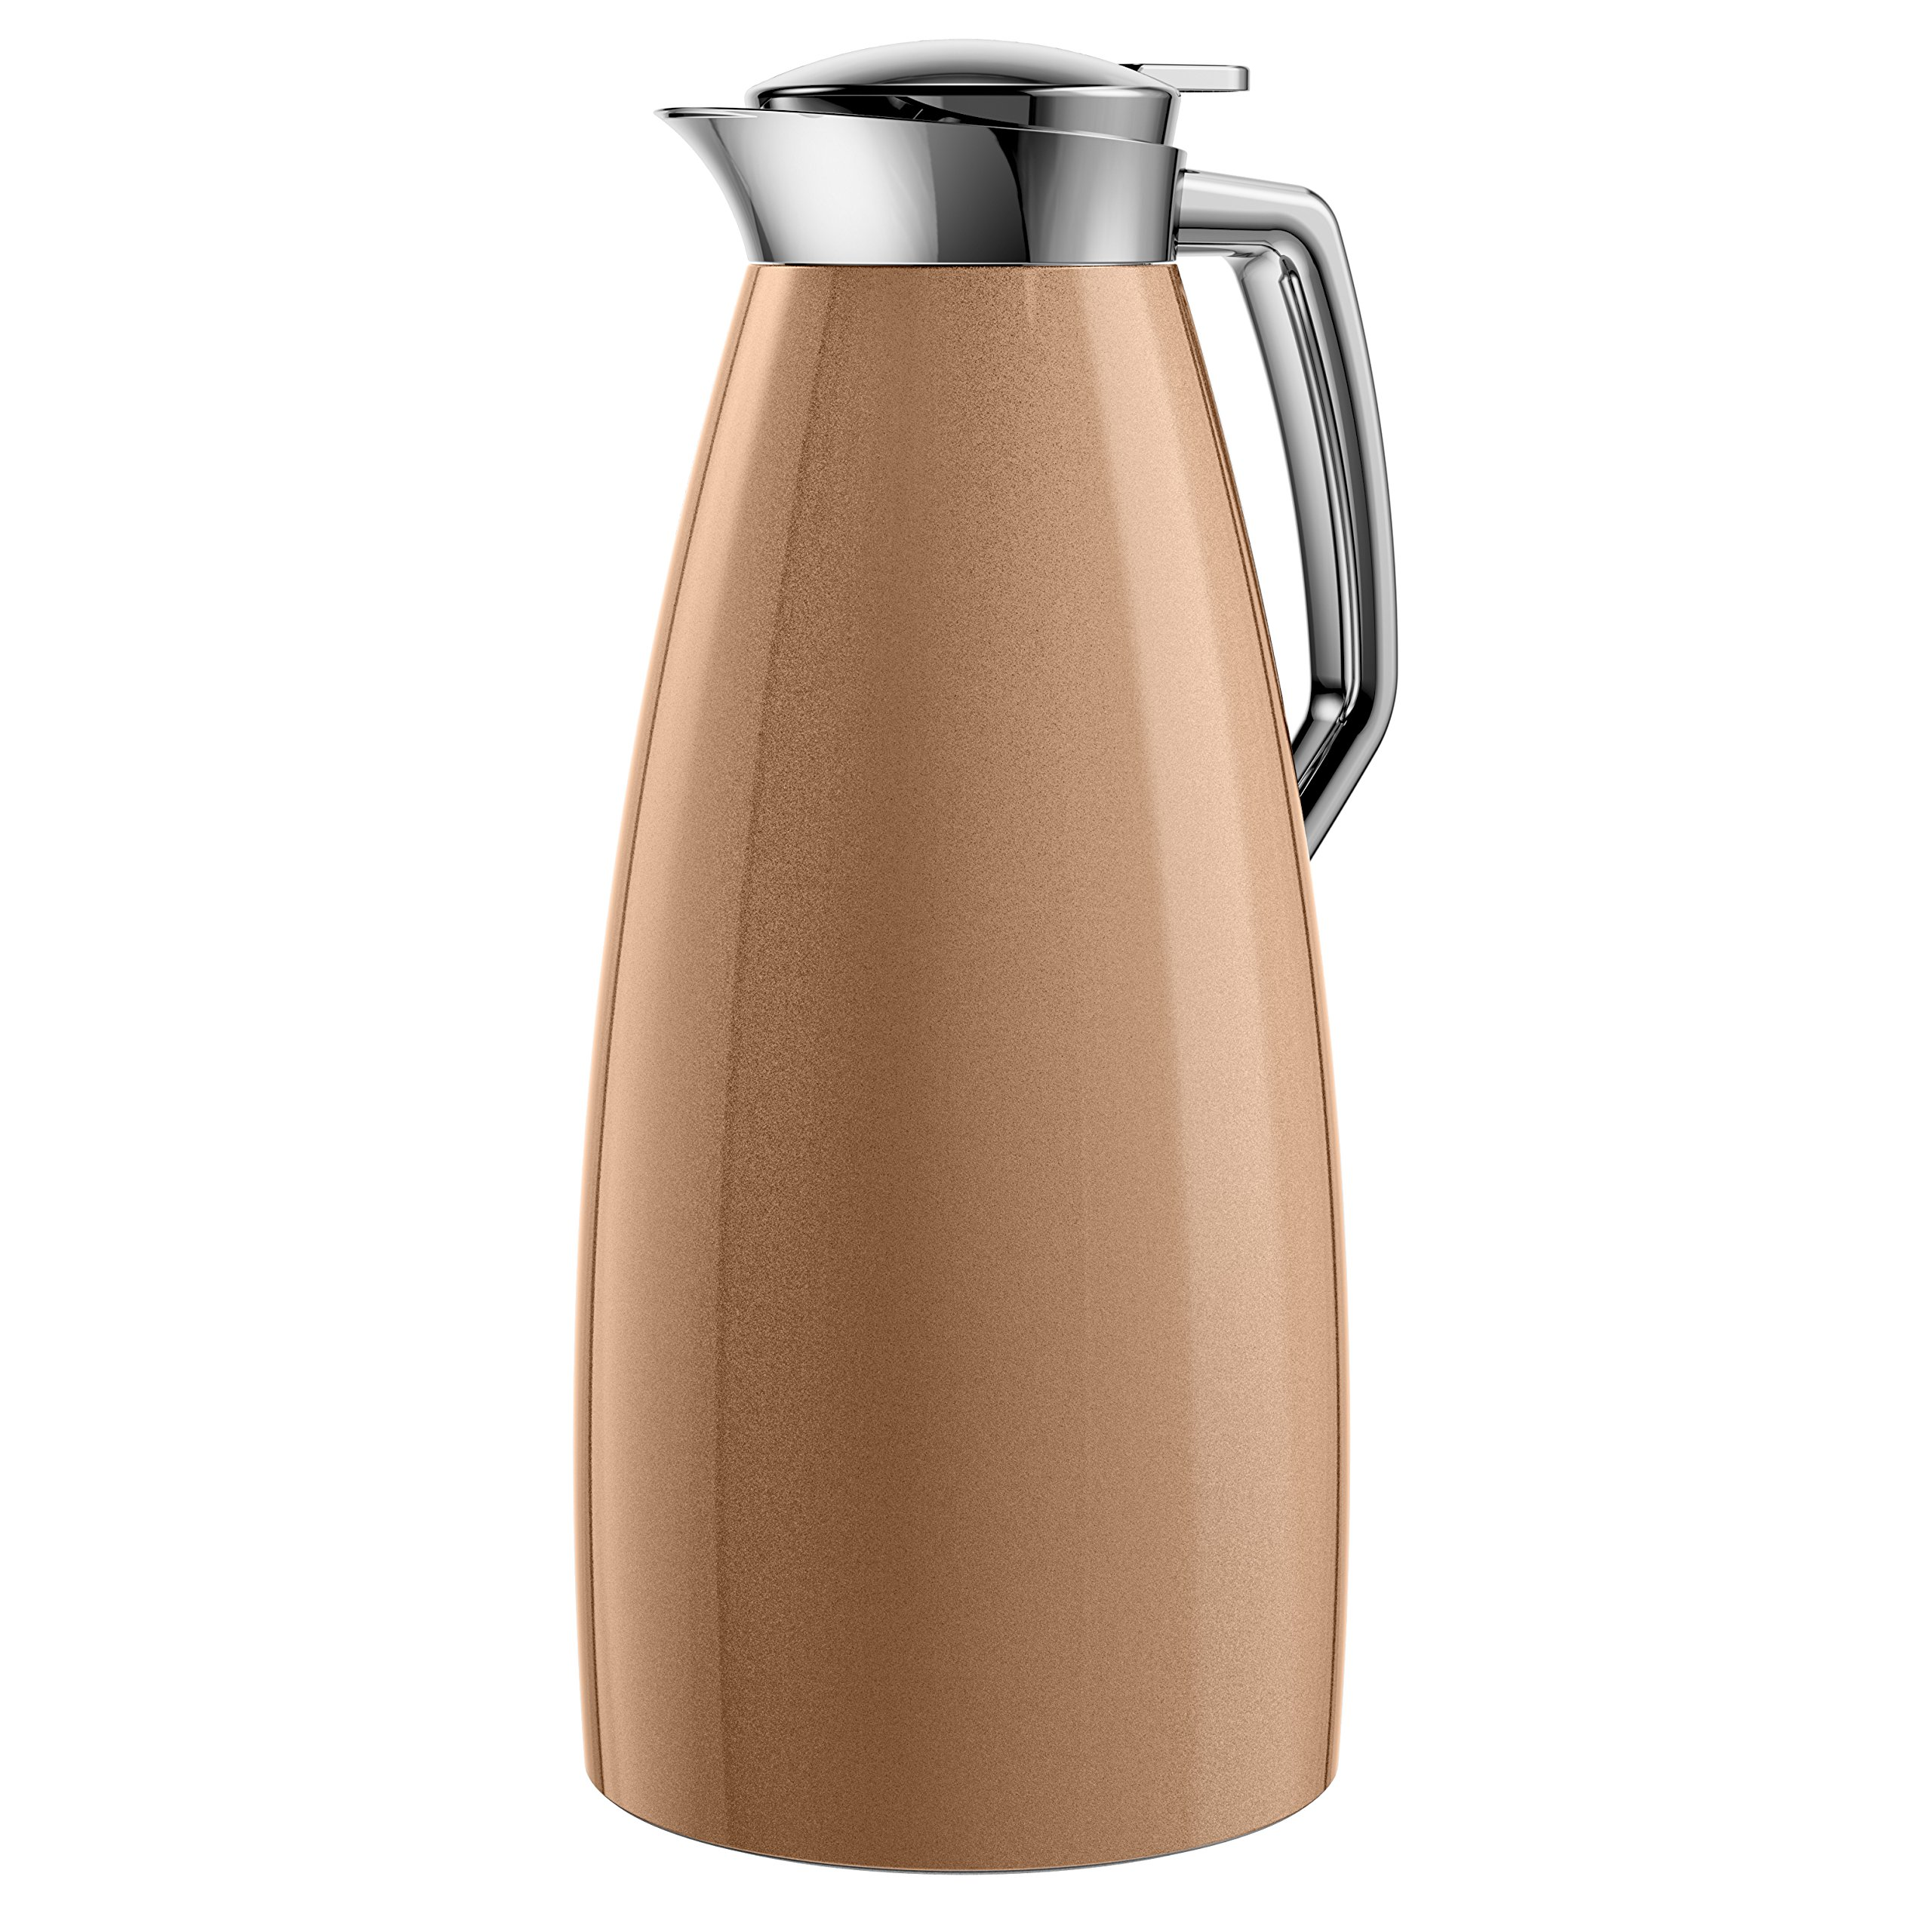 Emsa Plaza Vacuum Jug Quick Tip 1.5 L, Copper, Coffee, Tea Jug, Thermos Flask, 514377